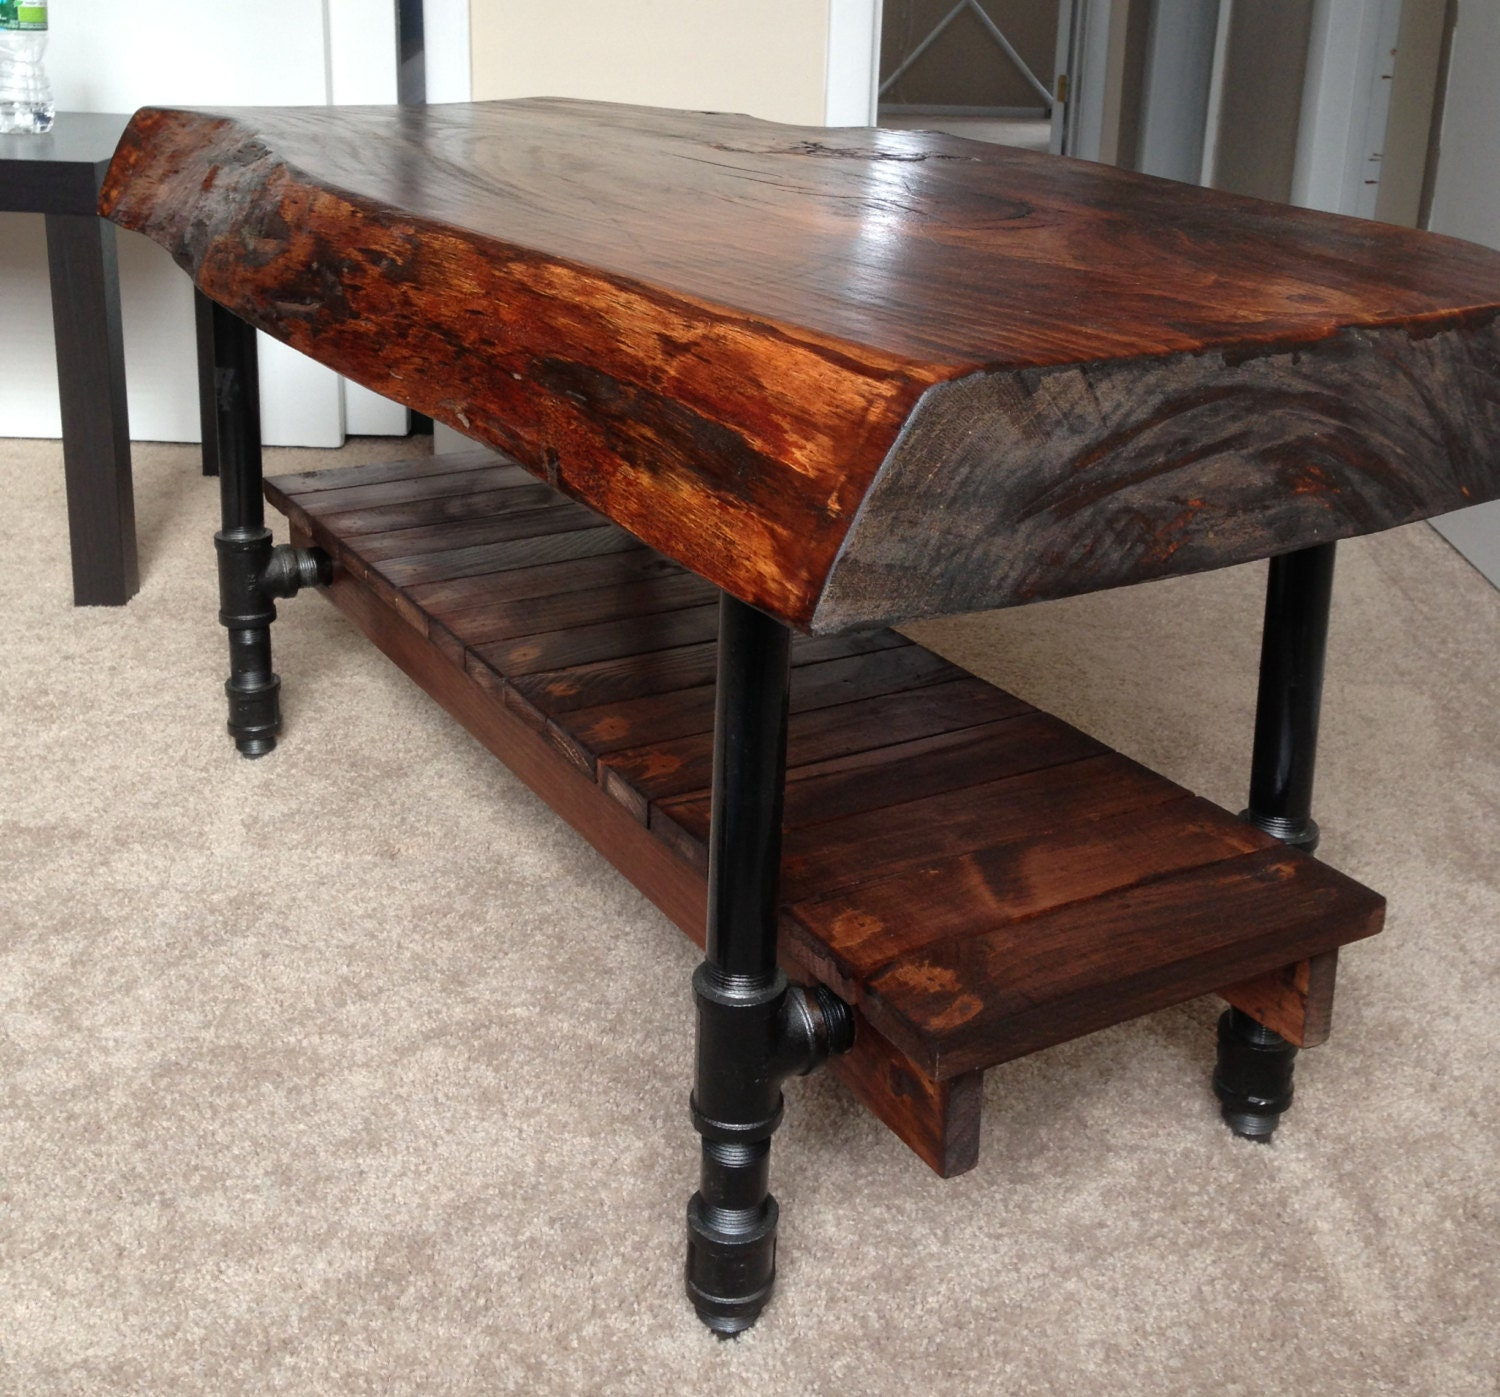 Pine Coffee Table With Turned Legs: Items Similar To Natural Pine Coffee Table With Custom